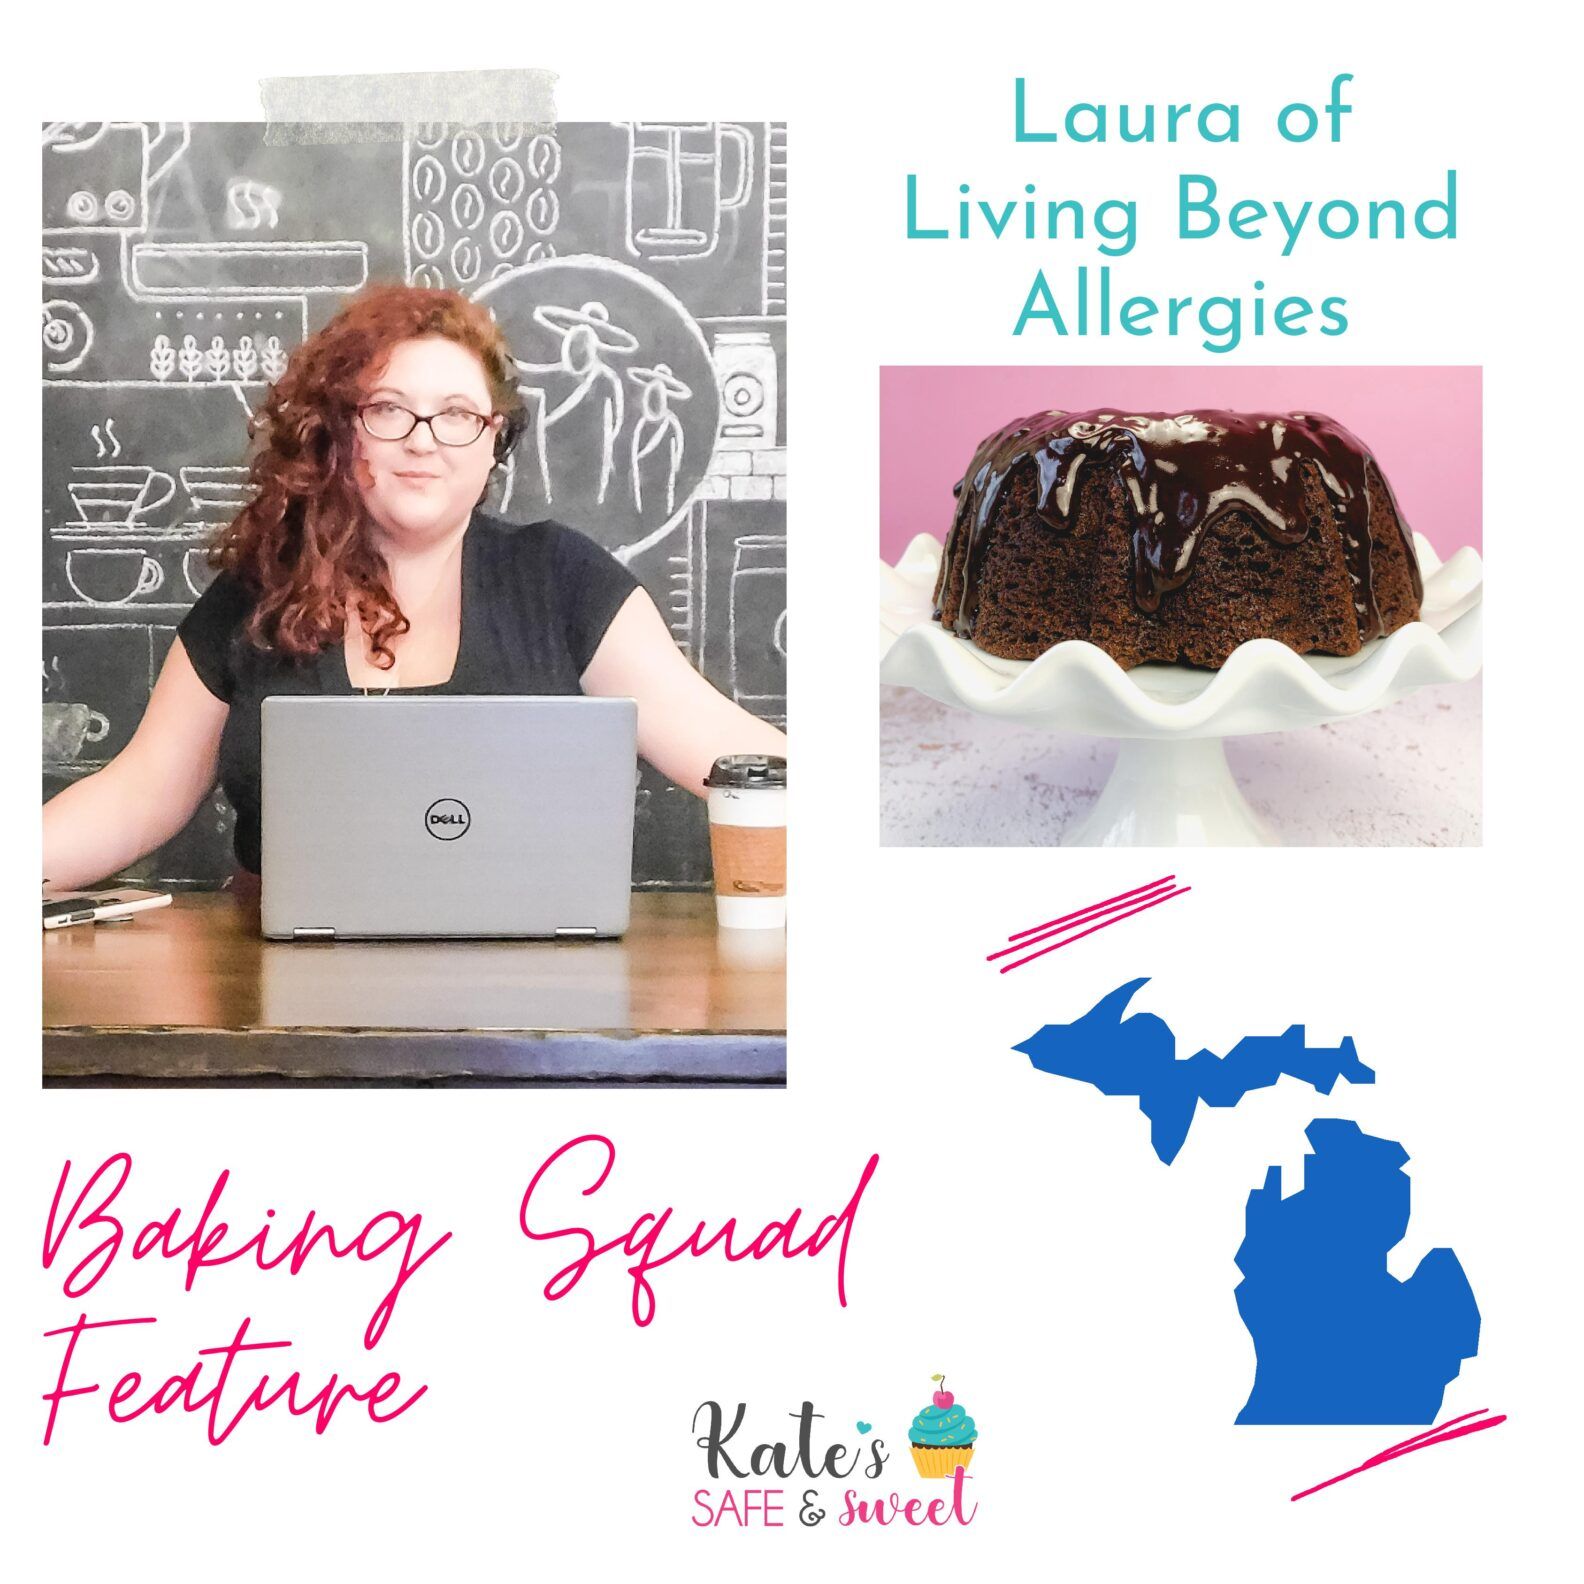 Baking Squad Feature - Laura